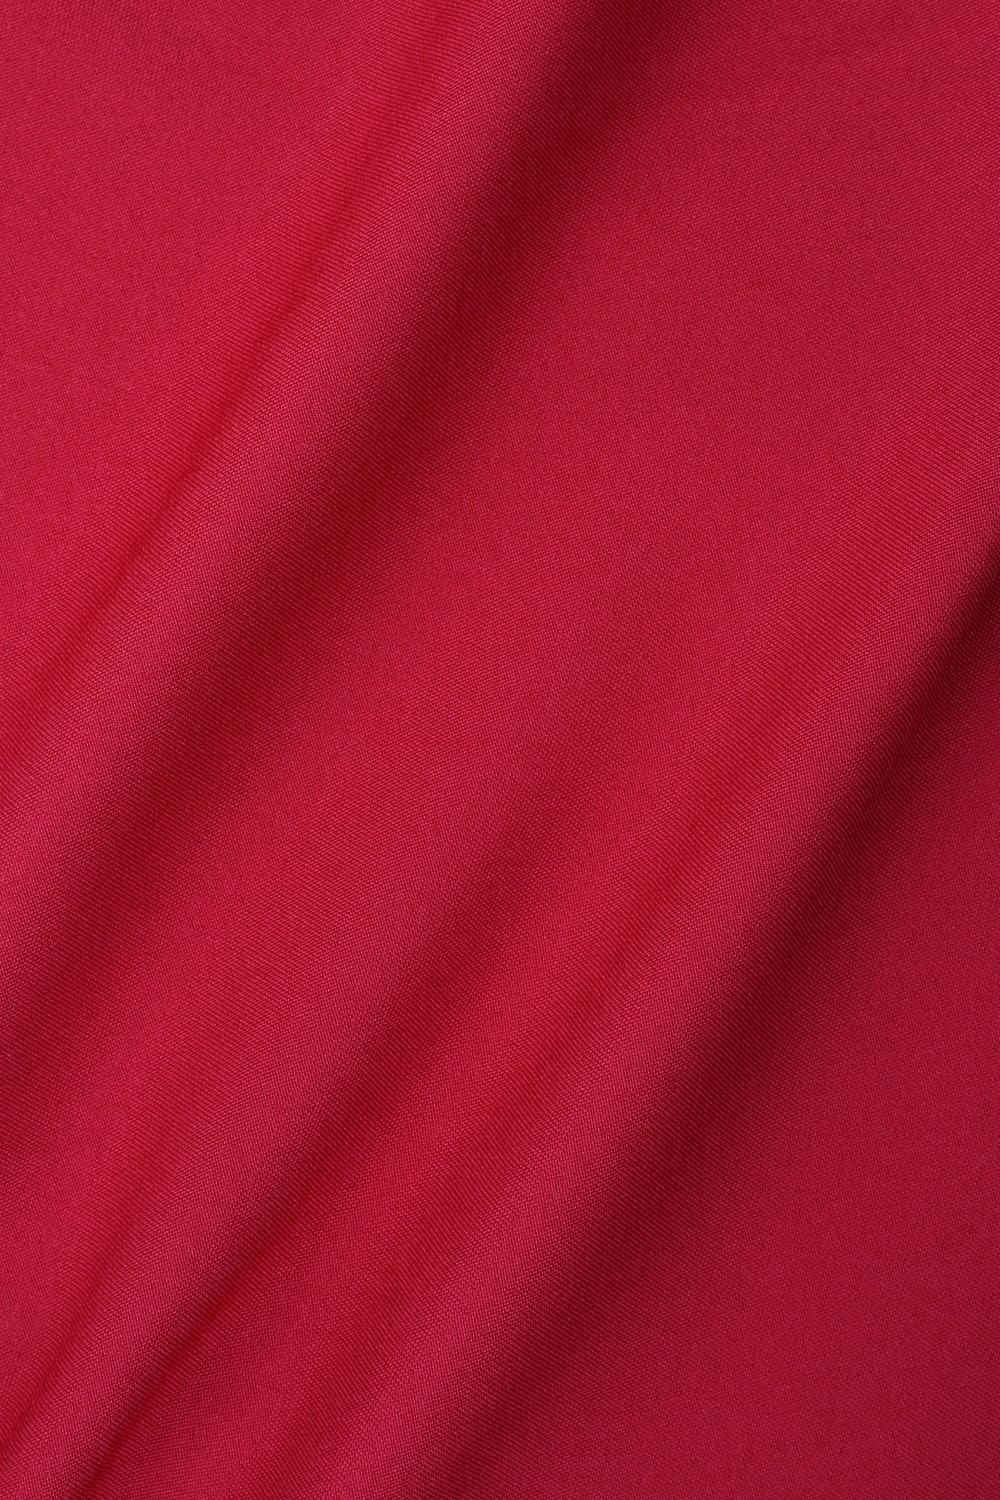 CARDINAL- RED COTTON /POLY BLEND